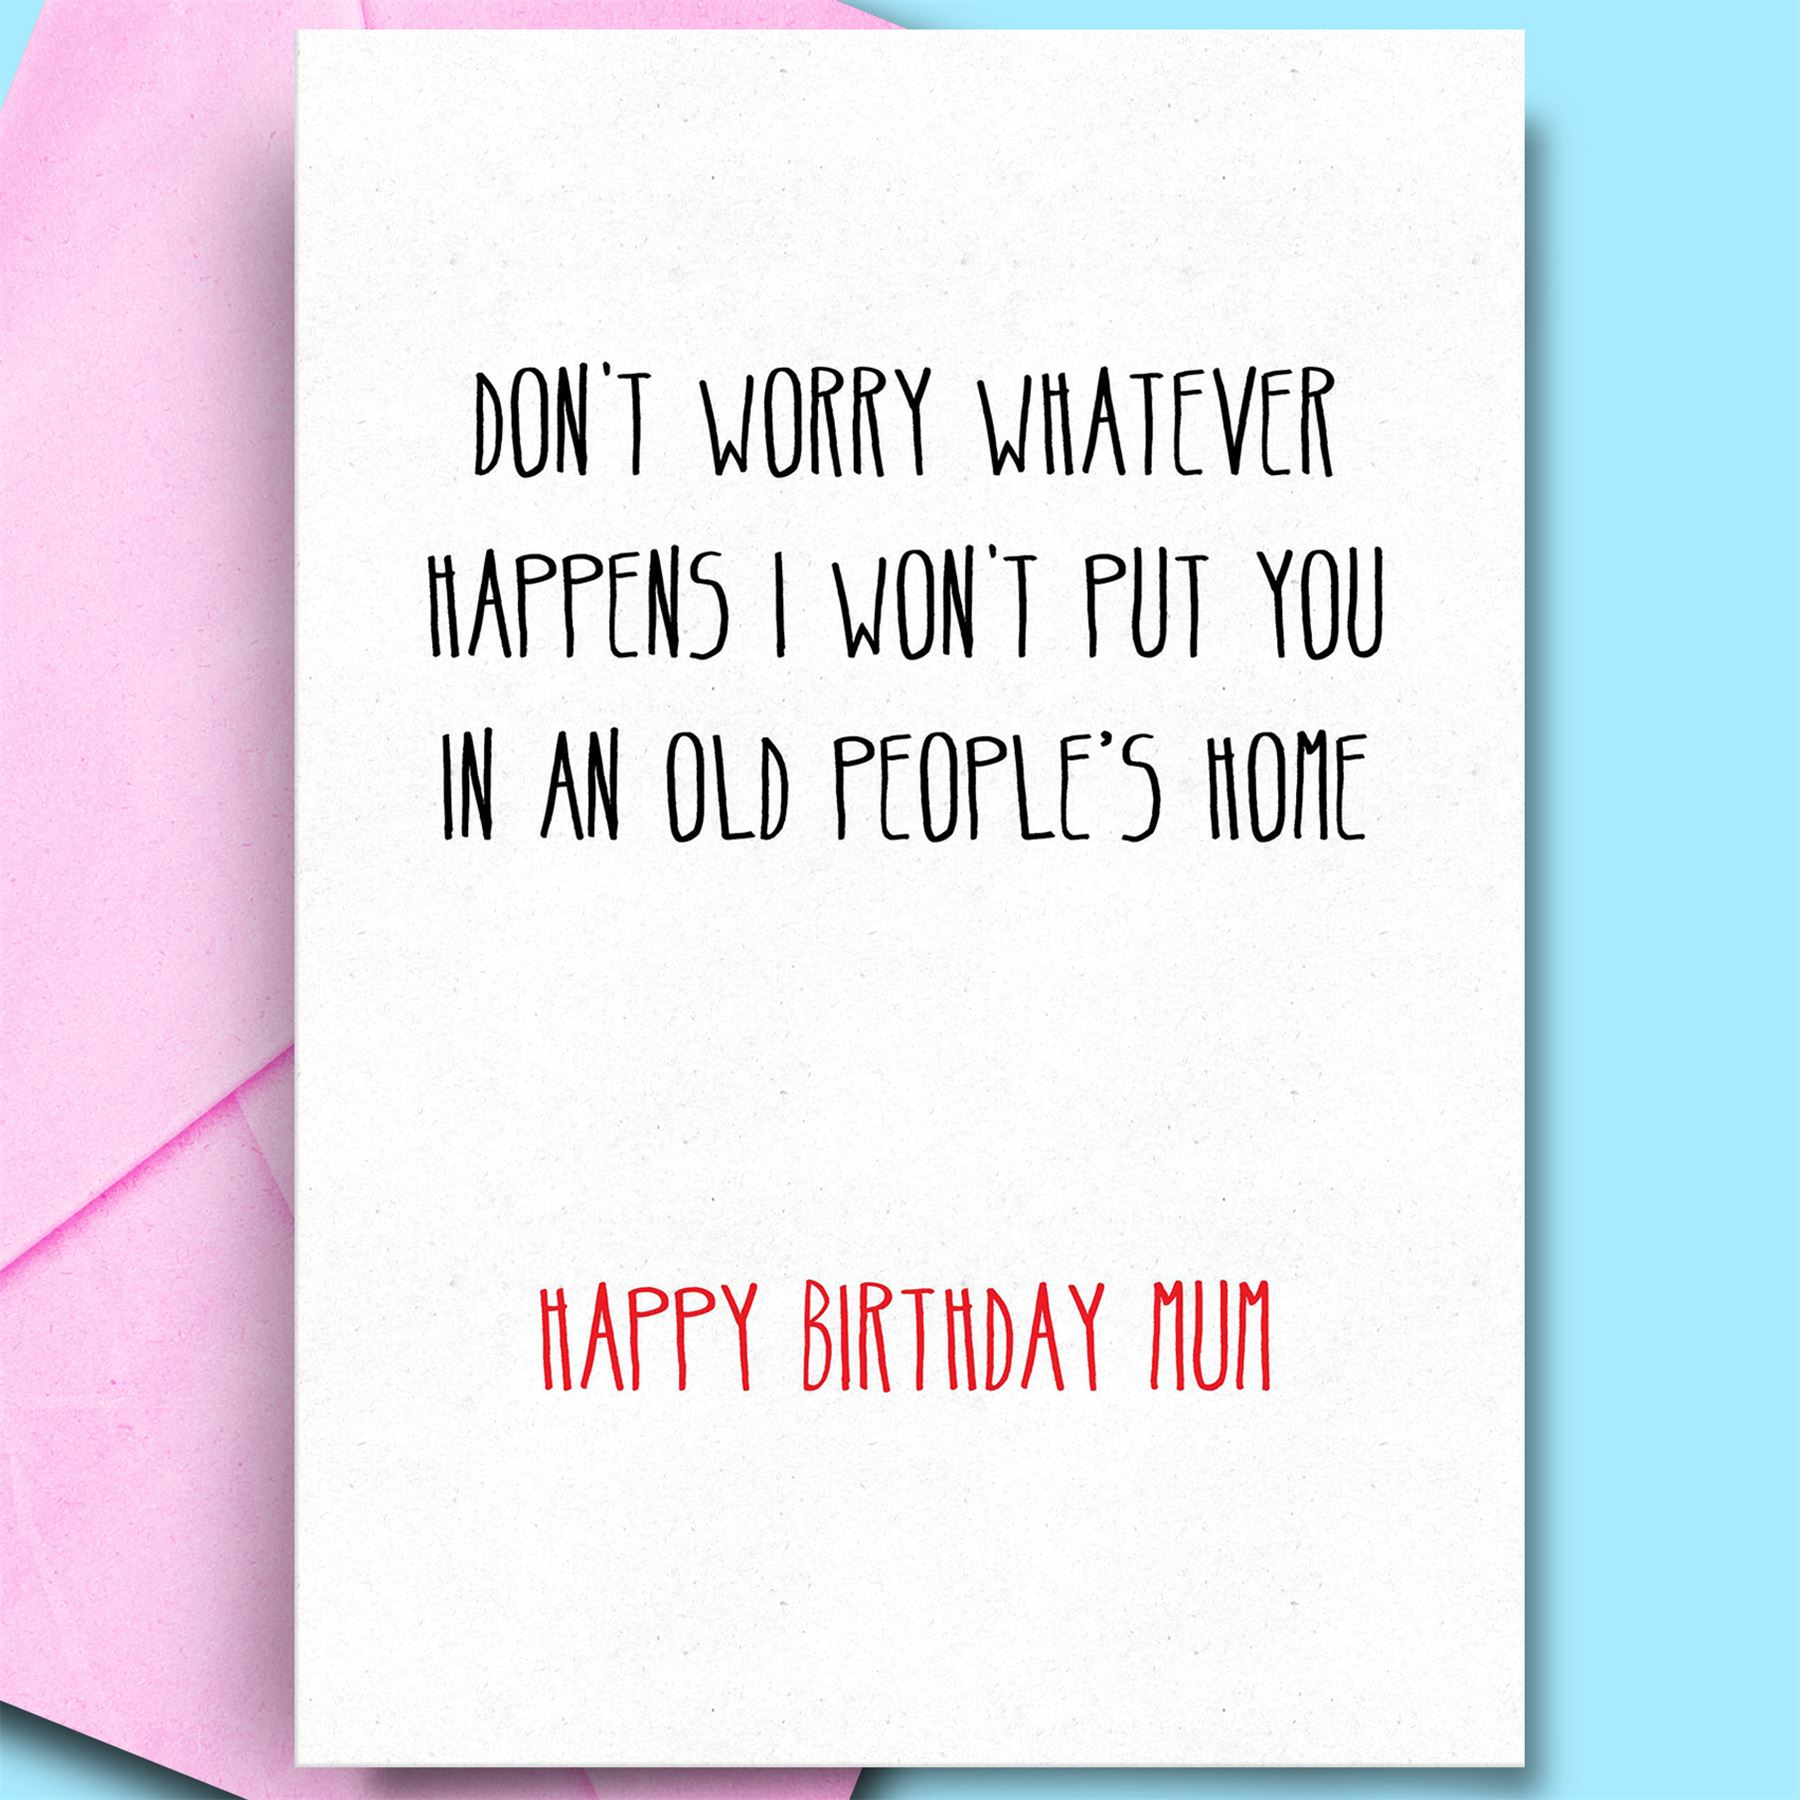 Ideas For Birthday Cards For Dads Happy Birthday Cards Dad Mummy Mum Cool Birthday Cards Best Birthday